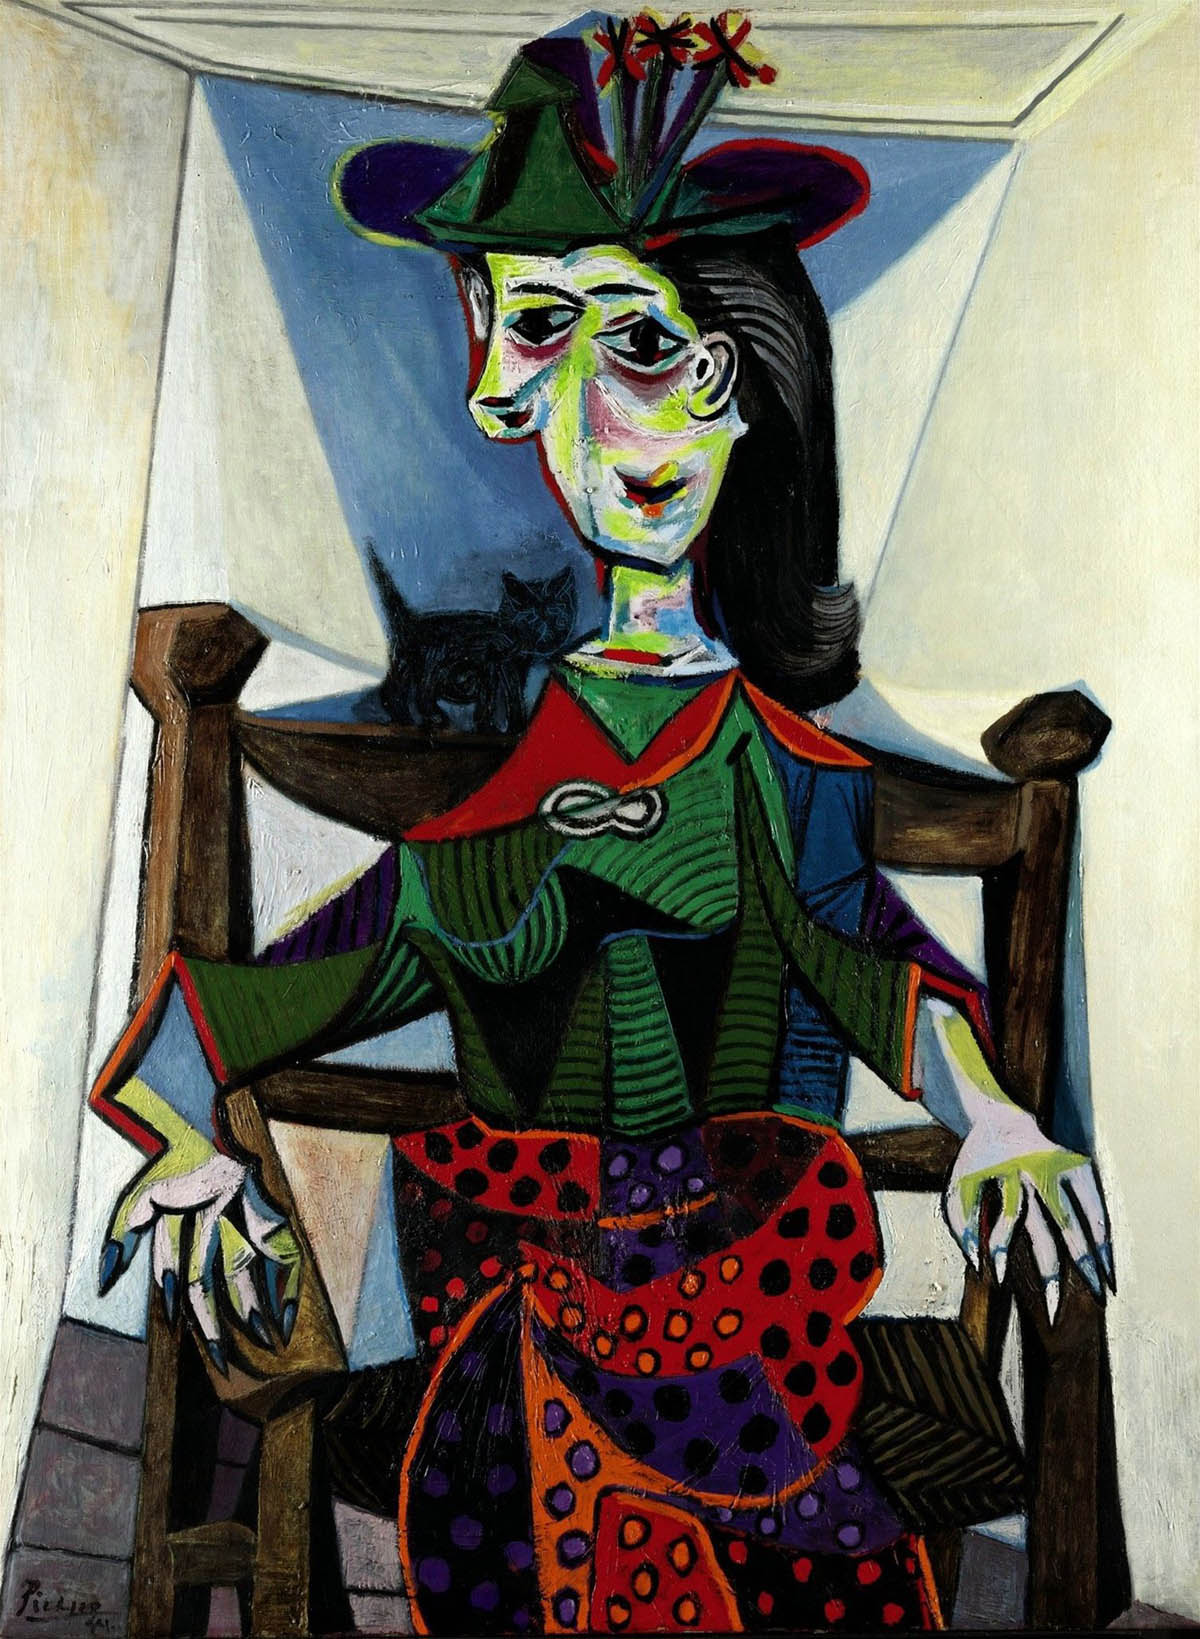 dora maar au chat famous painting by pablo picasso